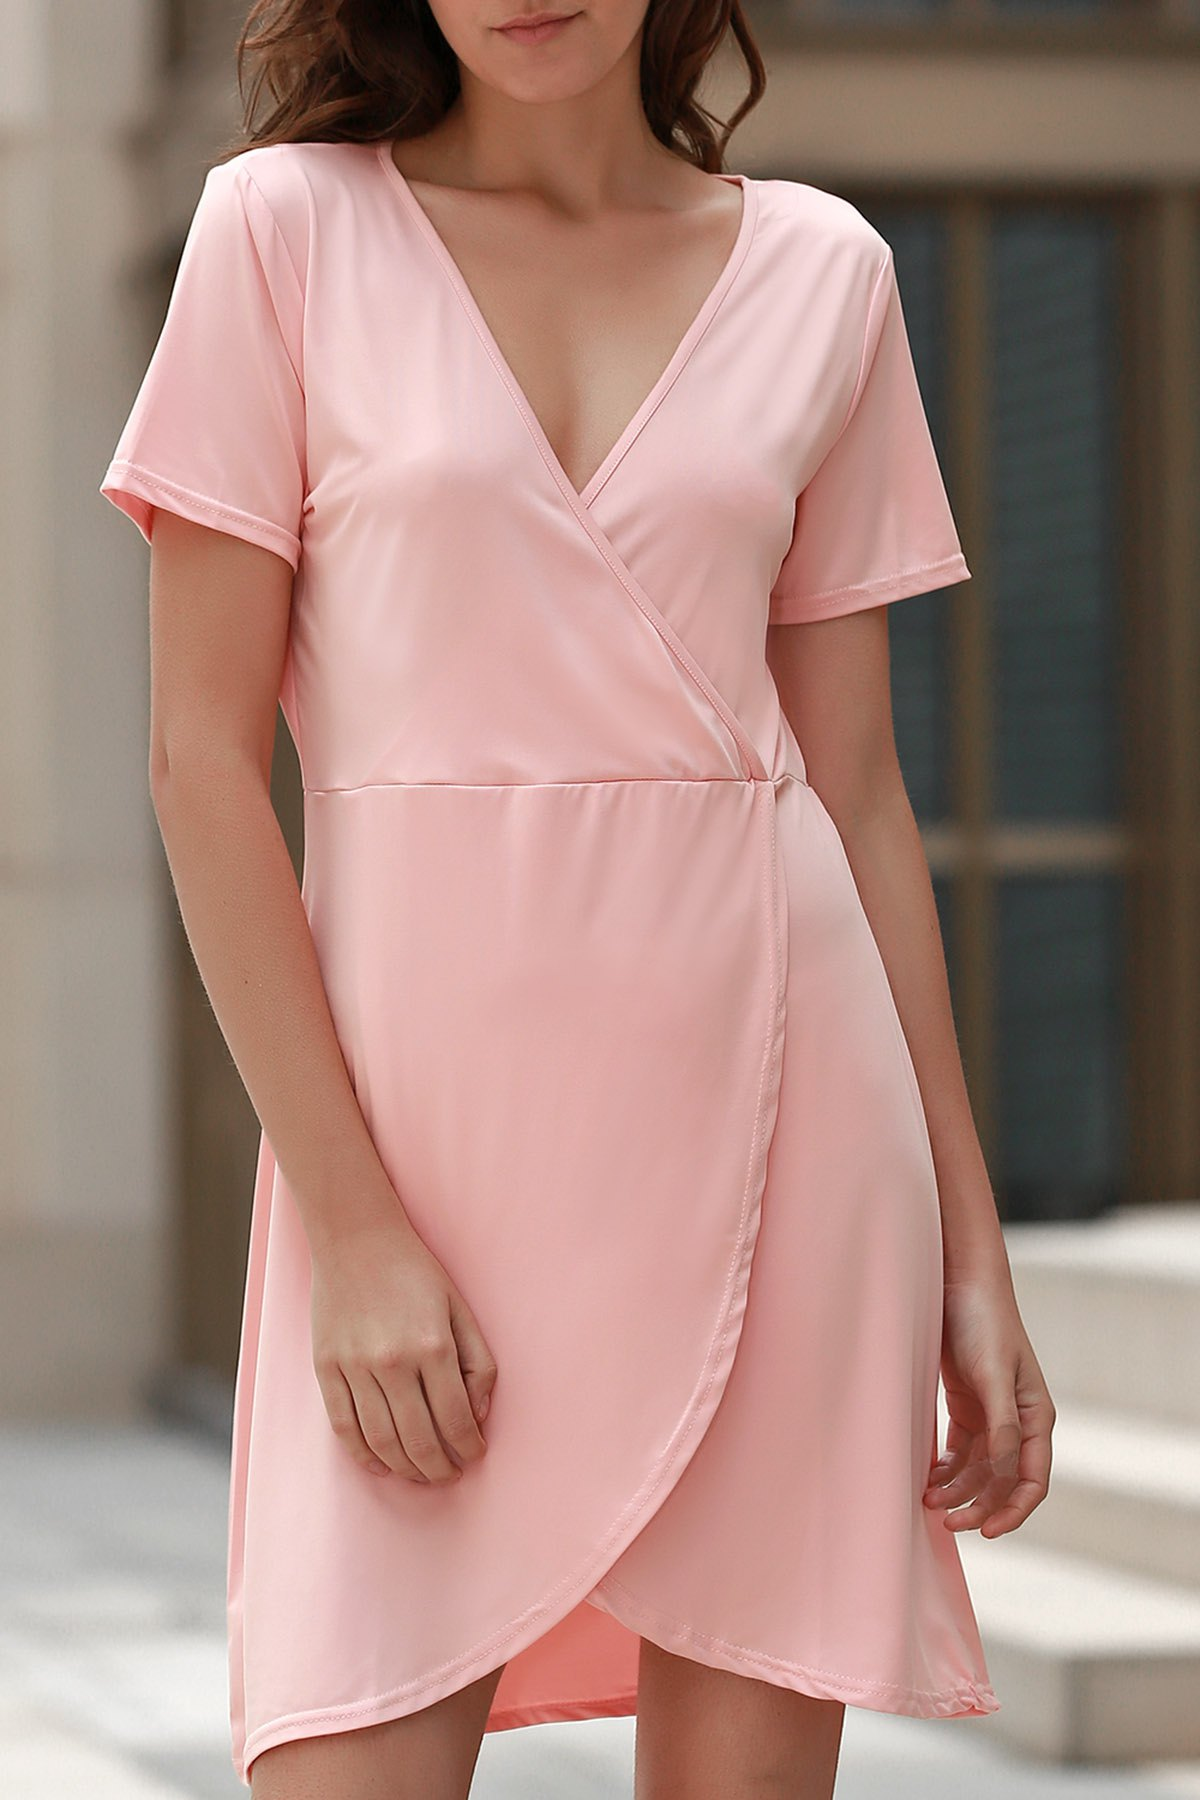 V Neck Short Sleeve Solid Color Irregular Hem Dress